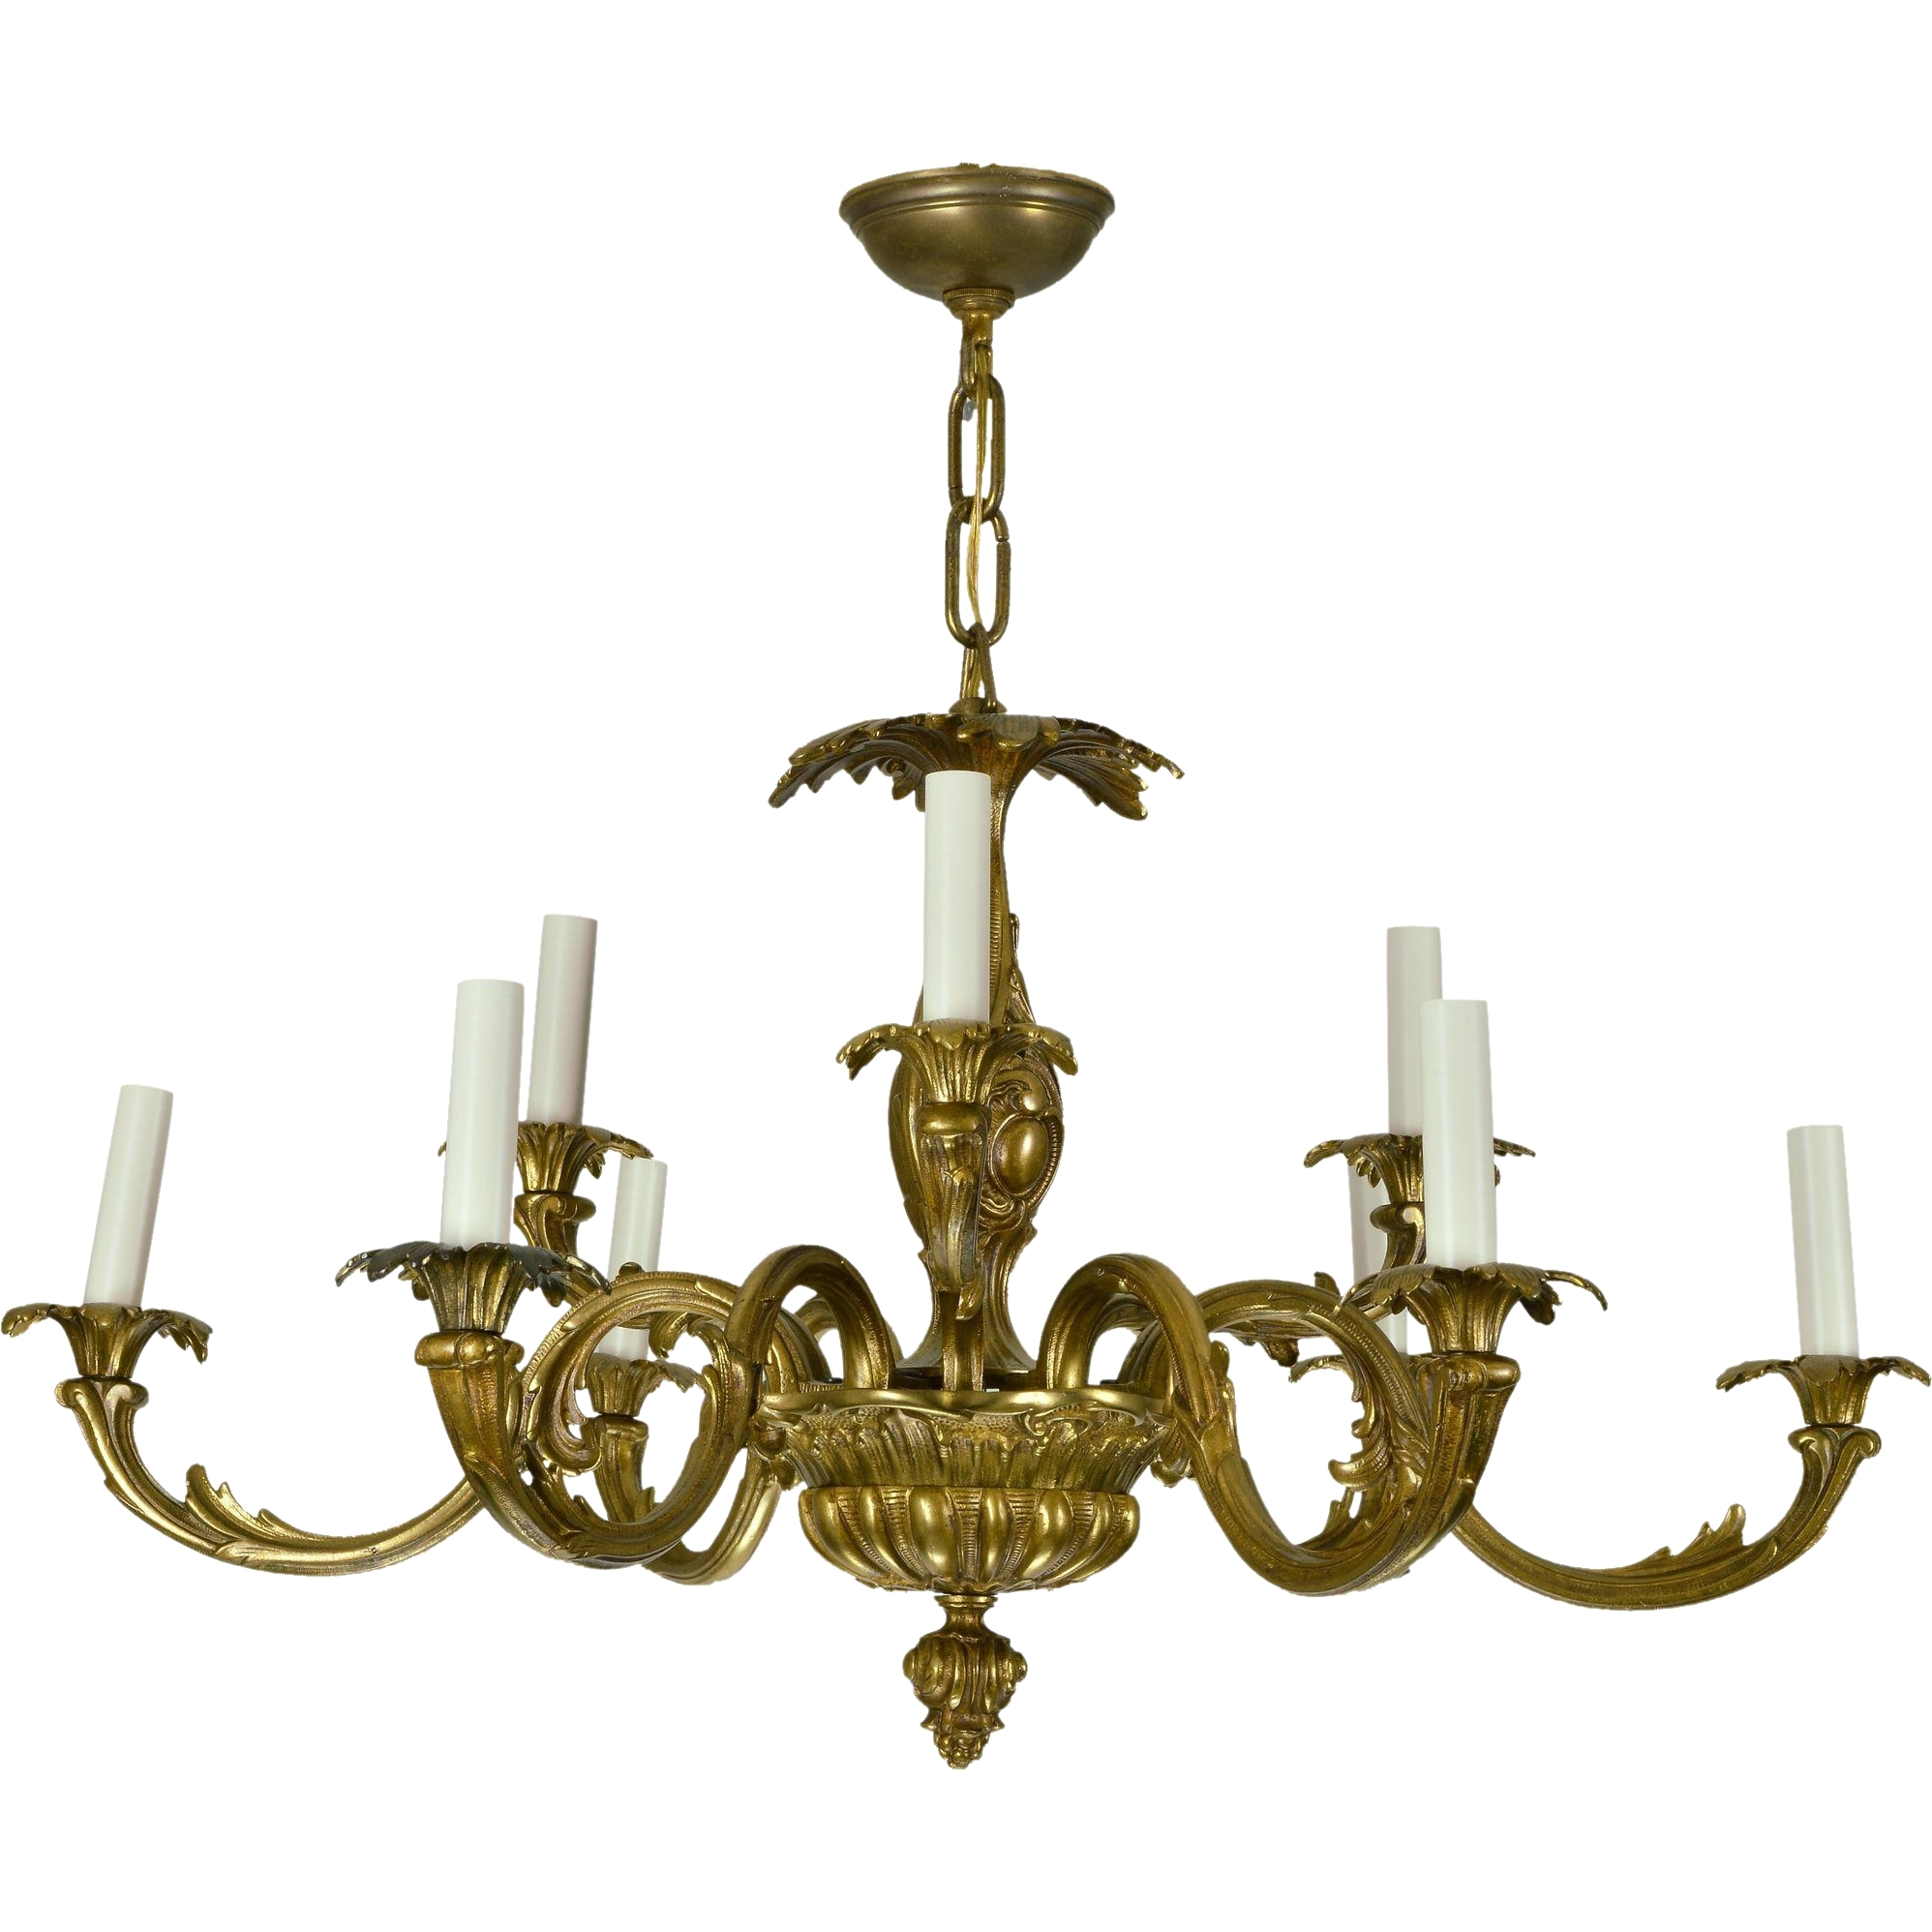 Old Brass Chandelier With Regard To Newest Home Design : Graceful Antique Brass Chandeliers Vintage Chandelier (View 10 of 15)